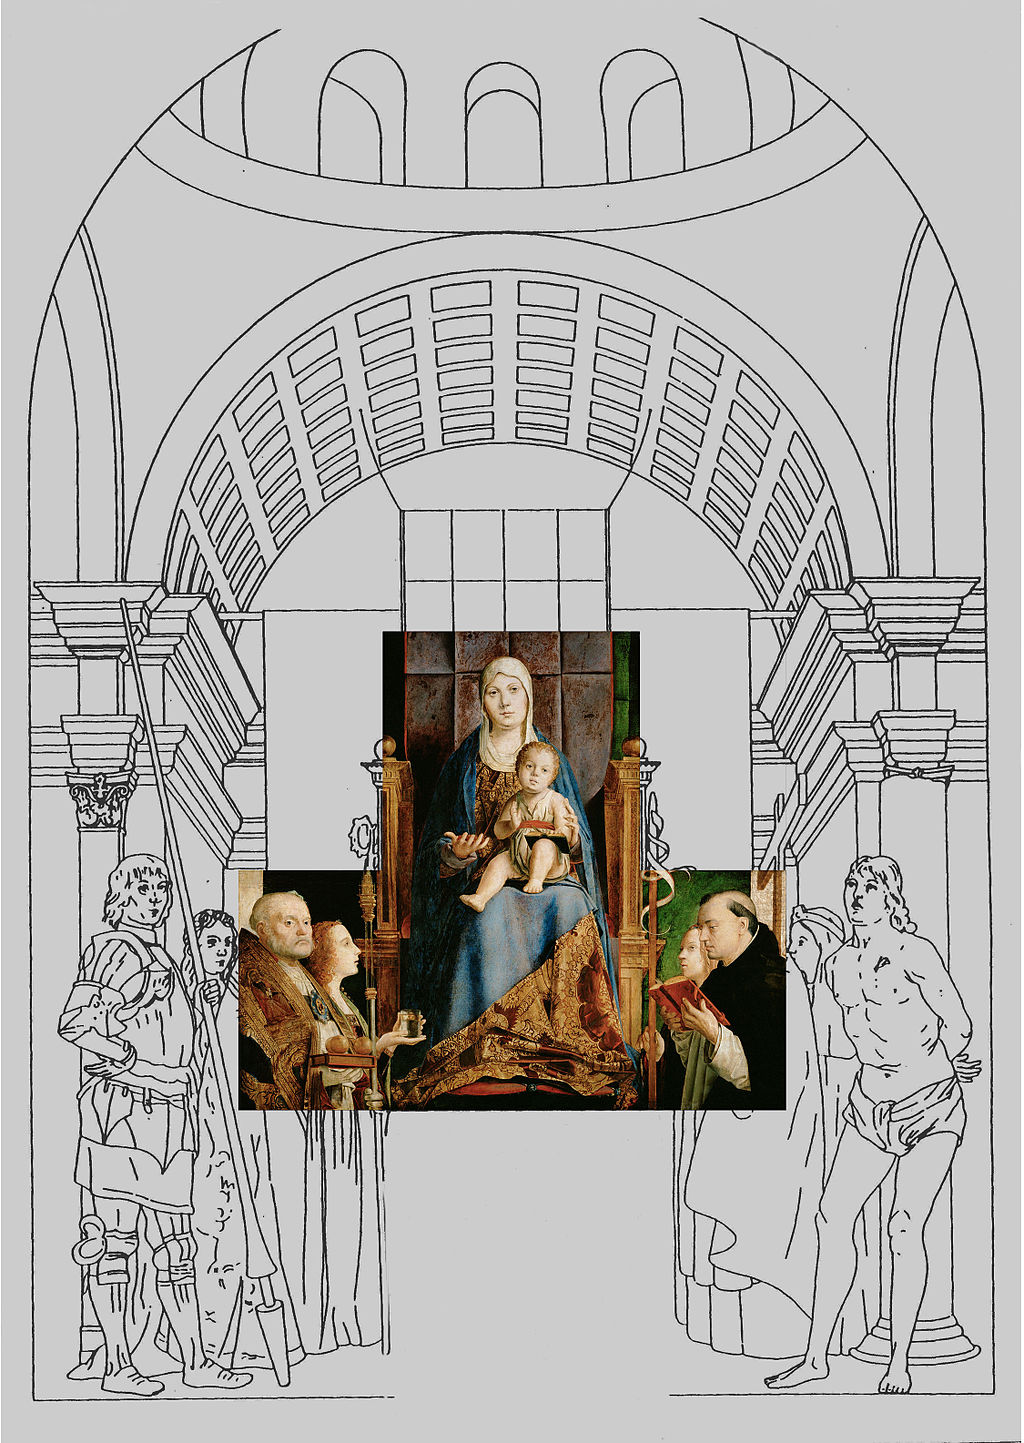 Pala di San Cassiano, Reconstruction of altarpiece with existing fragments and existing copies of lost fragments